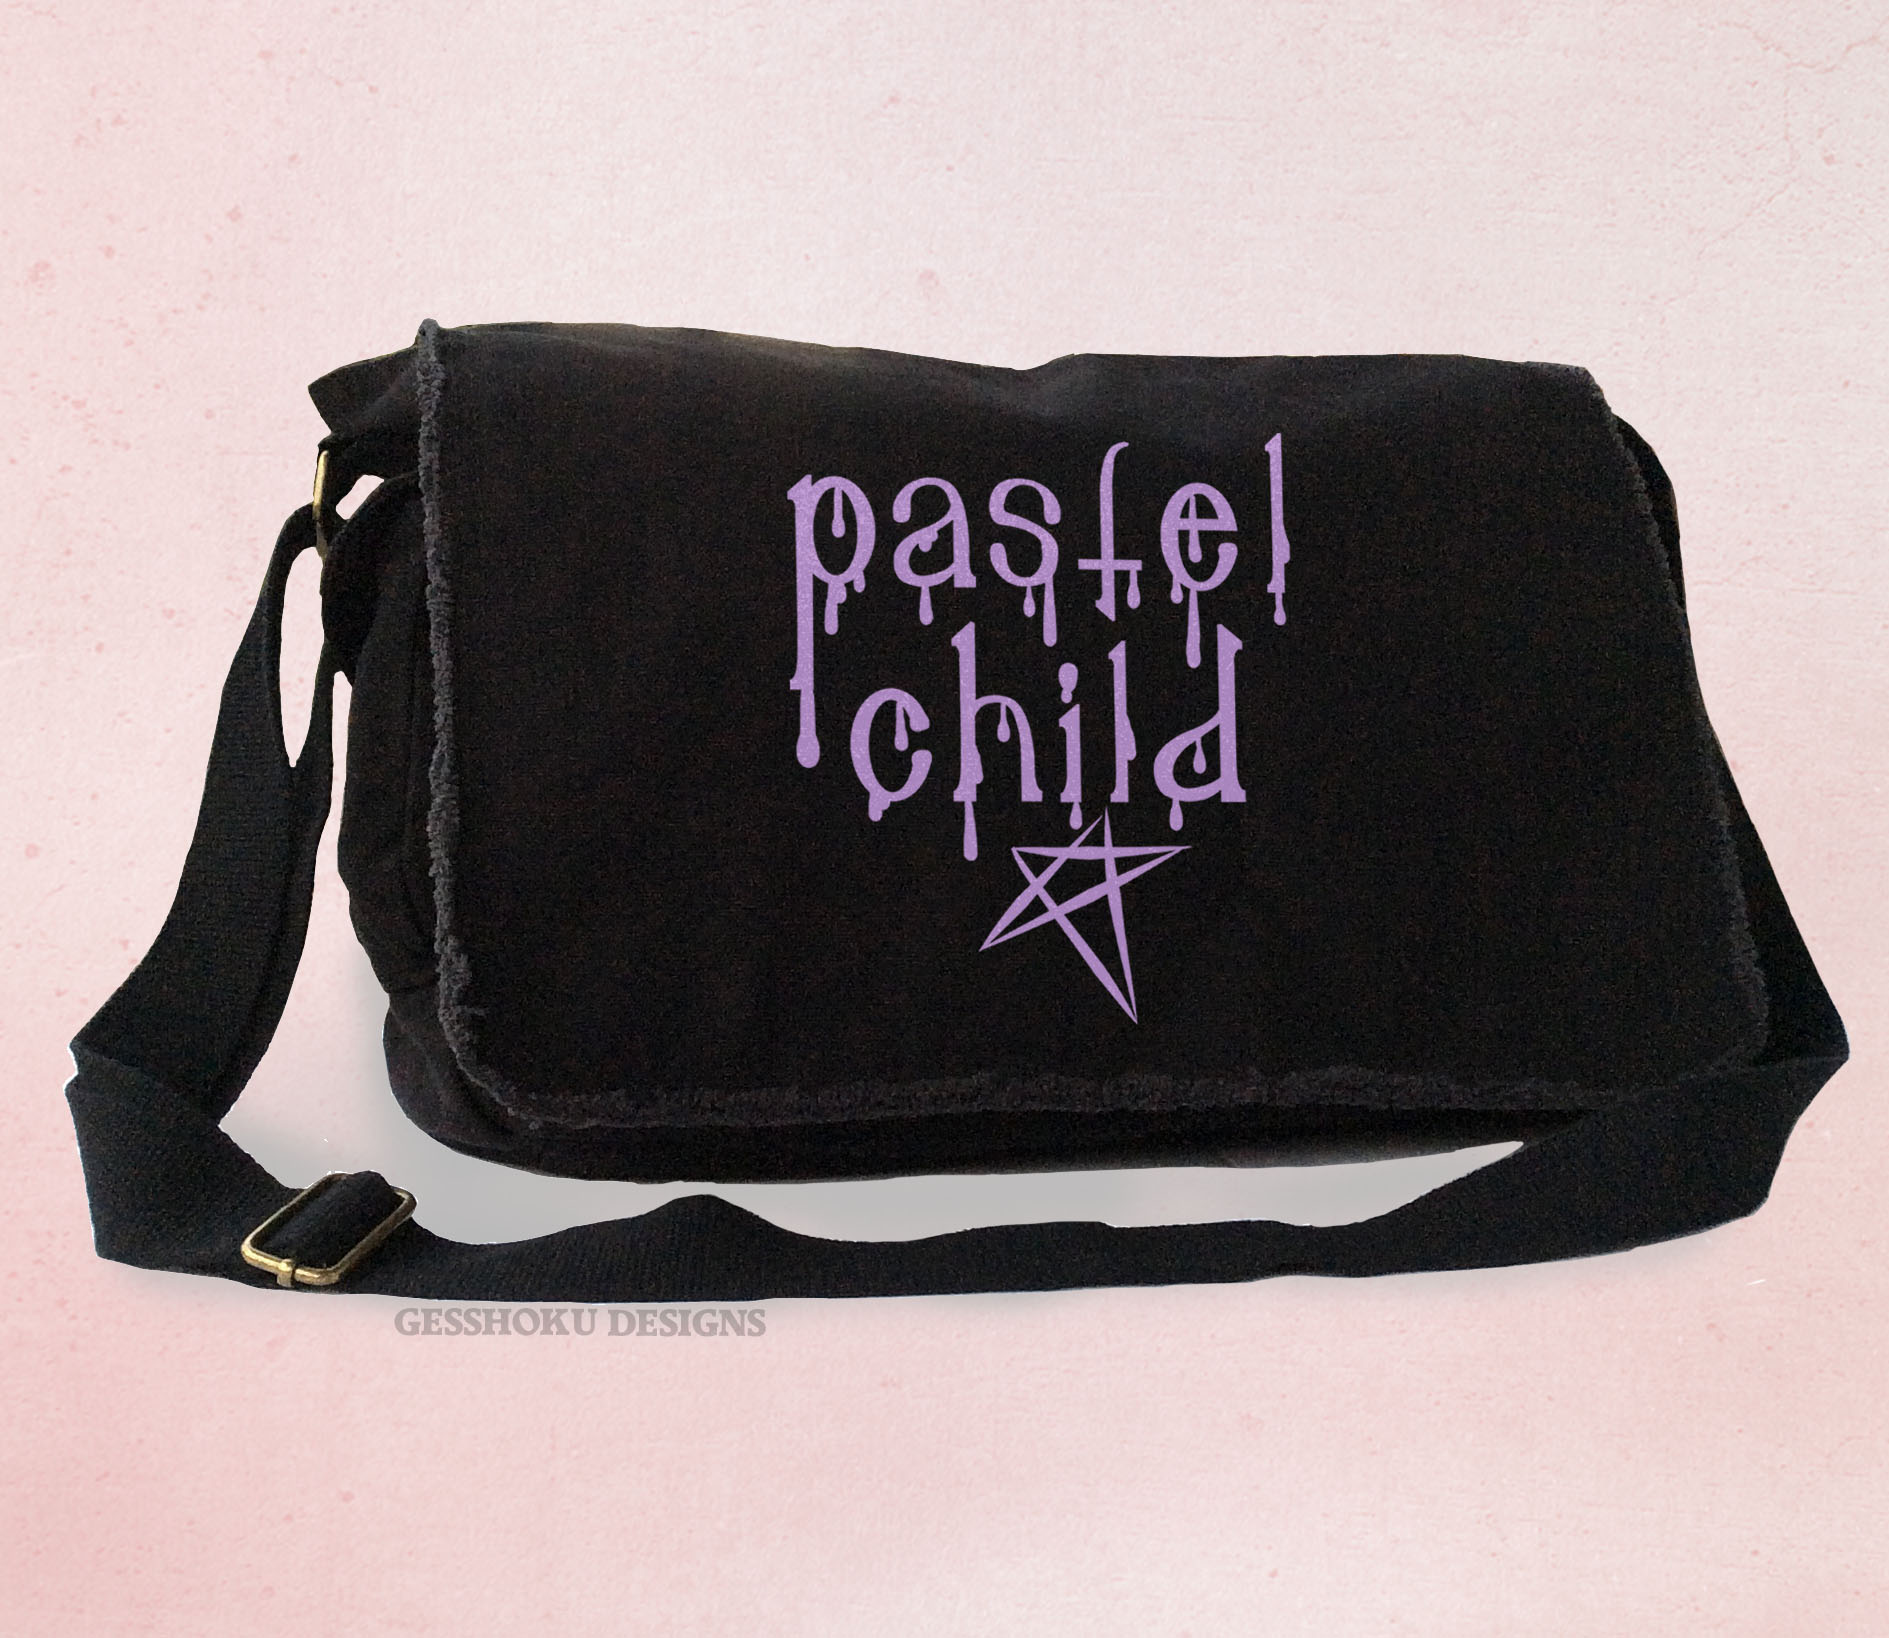 Pastel Child Messenger Bag - Black-